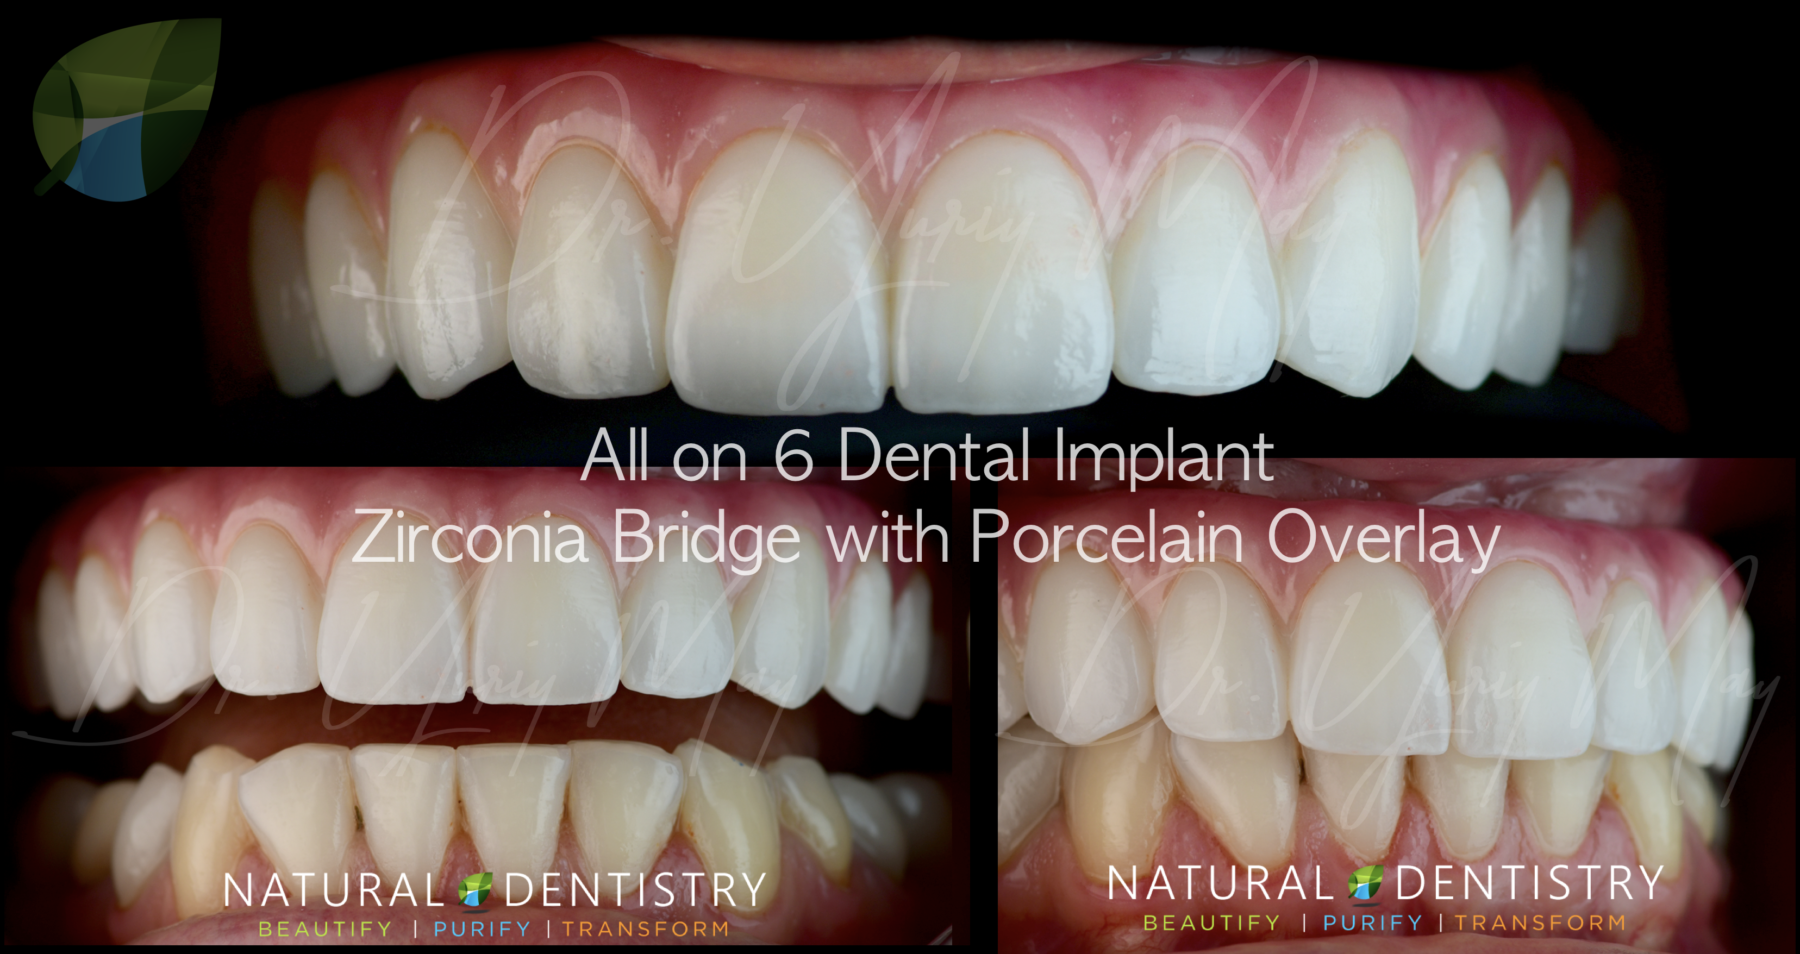 All On 6 Dental Implant Zirconia Hybrid Bridge Denture Best Dental Implant Dentist Full Mouth Reconstruction CT NY NJ